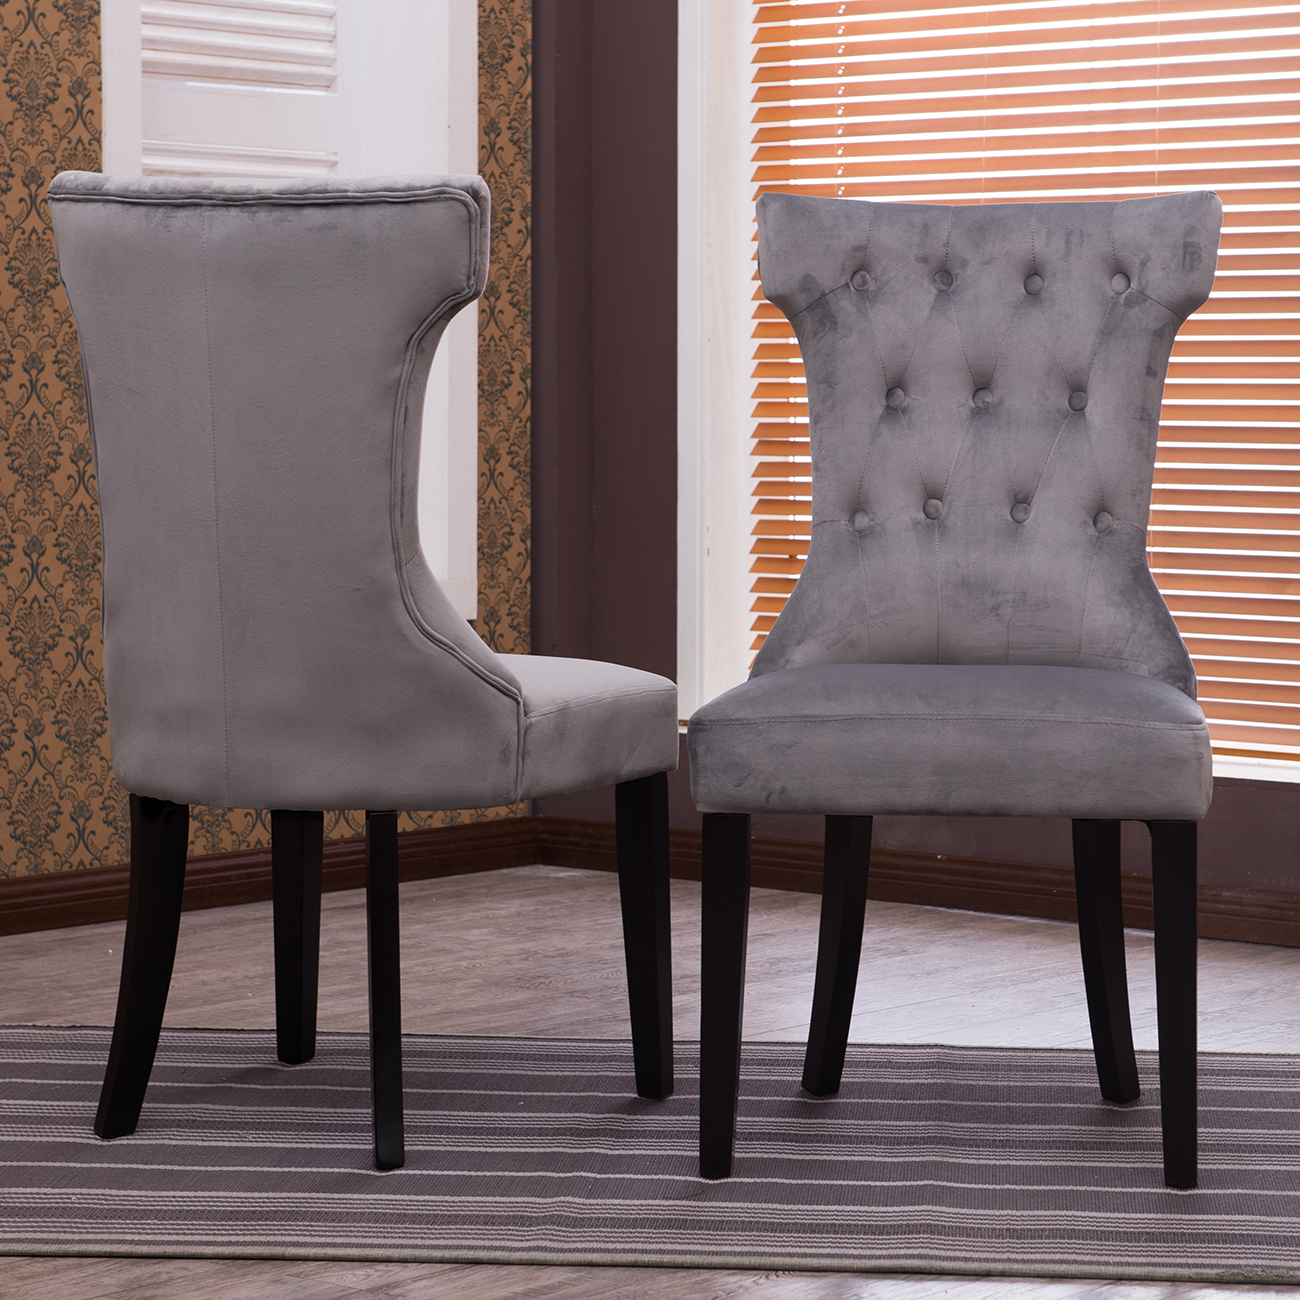 Dining Chair Set 2 Pair Accent Tufted Kitchen Modern Side: Set Of 2 Elegant Tufted Fabric Armless Side Chairs Modern